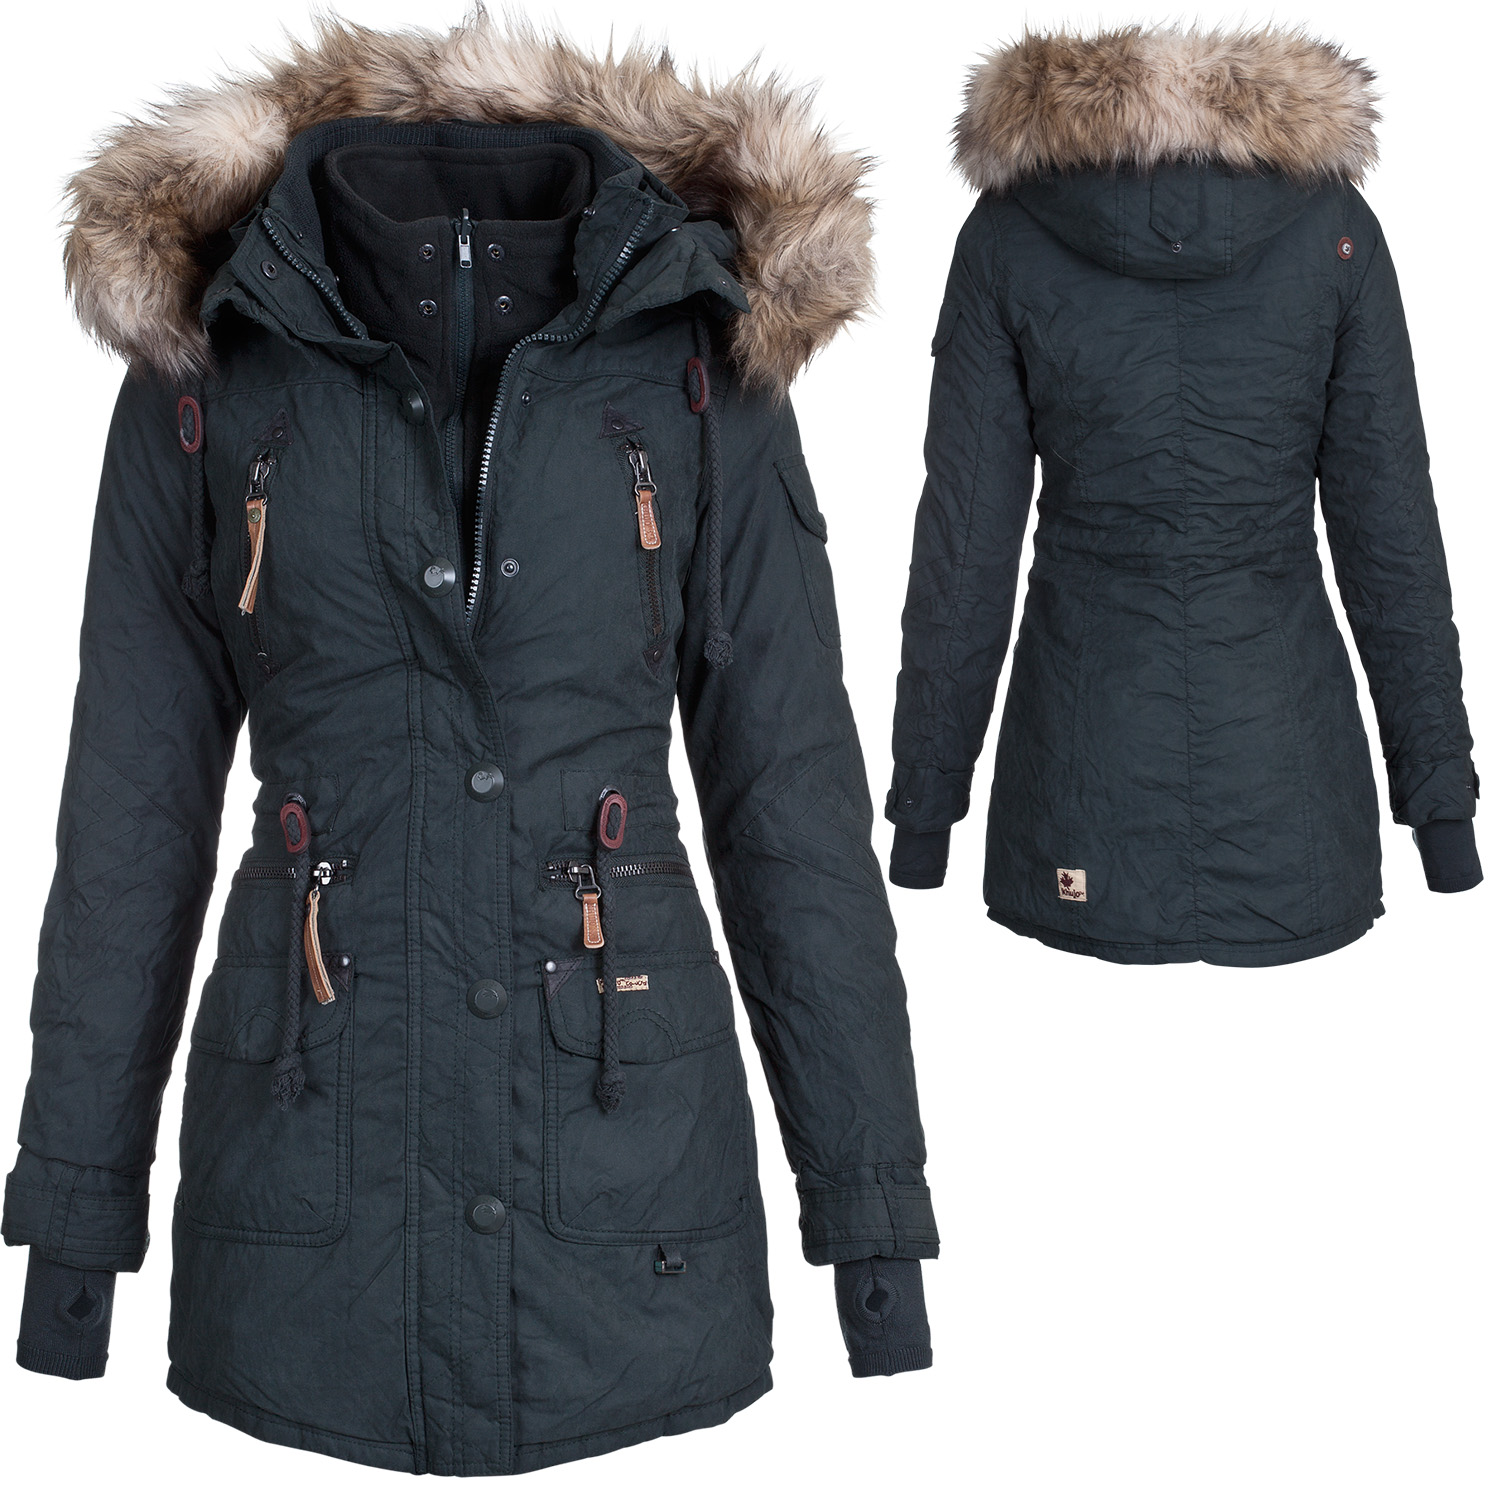 khujo damen winter mantel jacke camilla wintermantel winterjacke parka. Black Bedroom Furniture Sets. Home Design Ideas